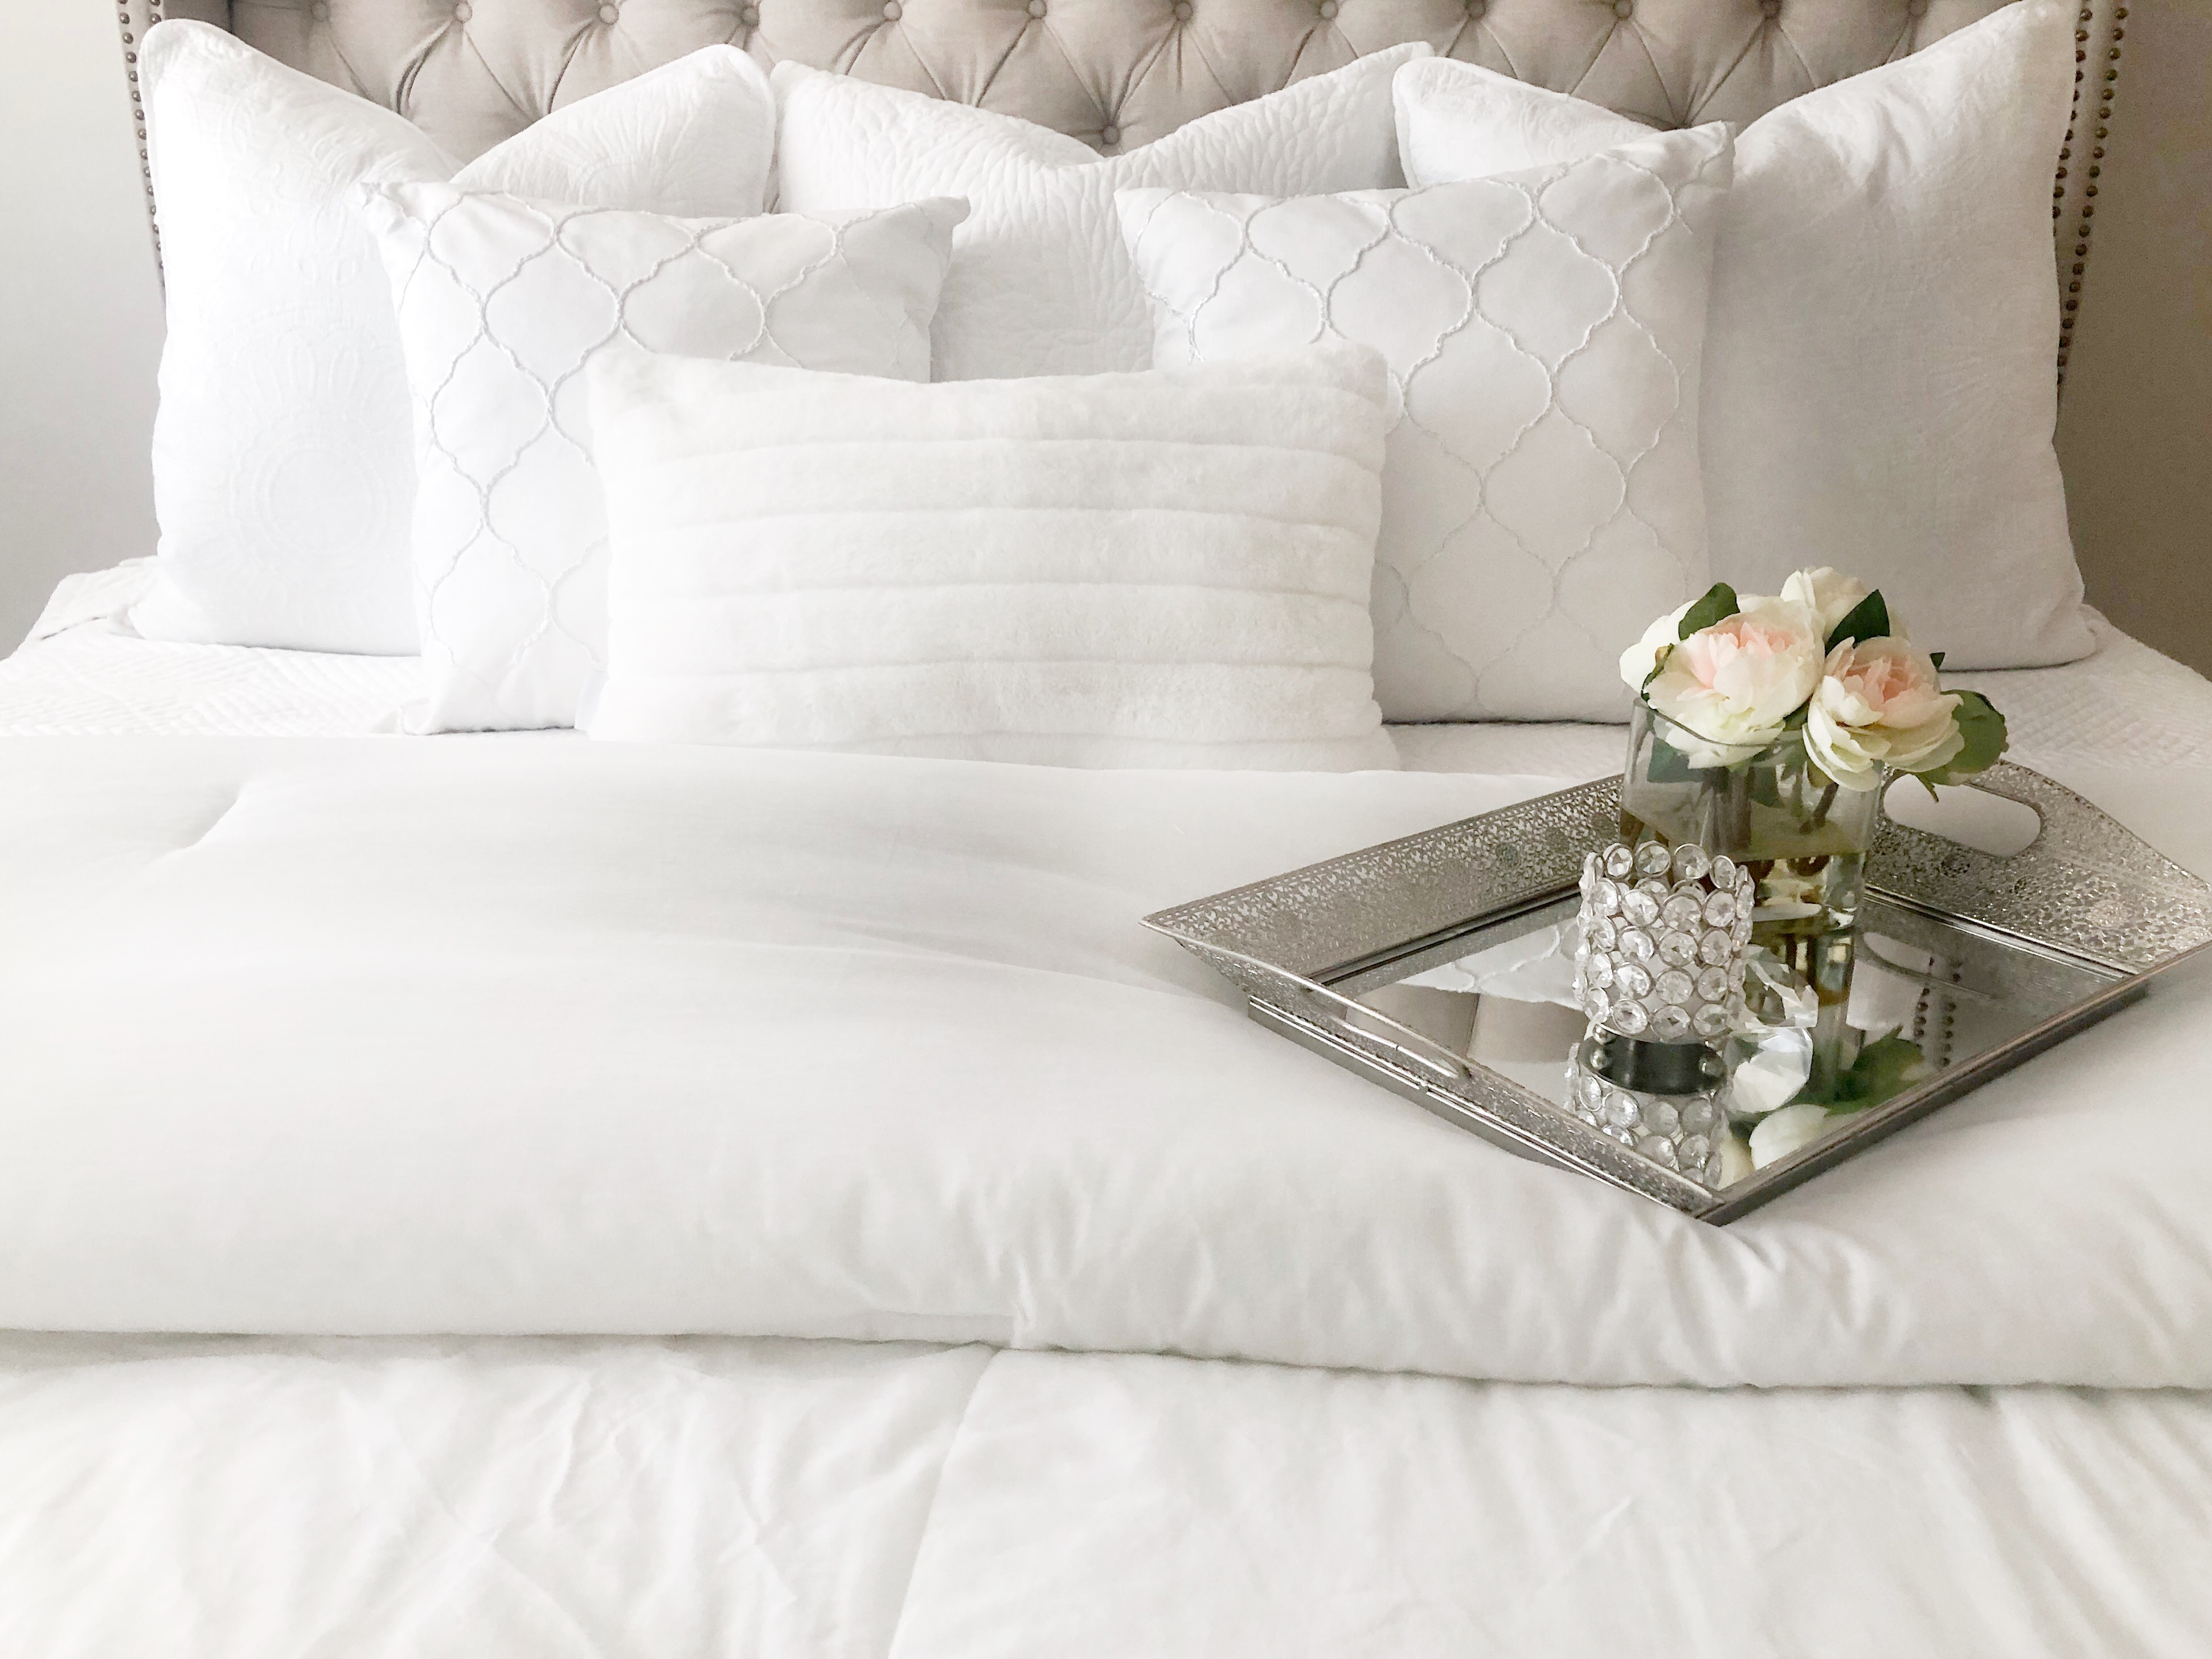 How to style a bed - HomeSense; Livin Life with Style